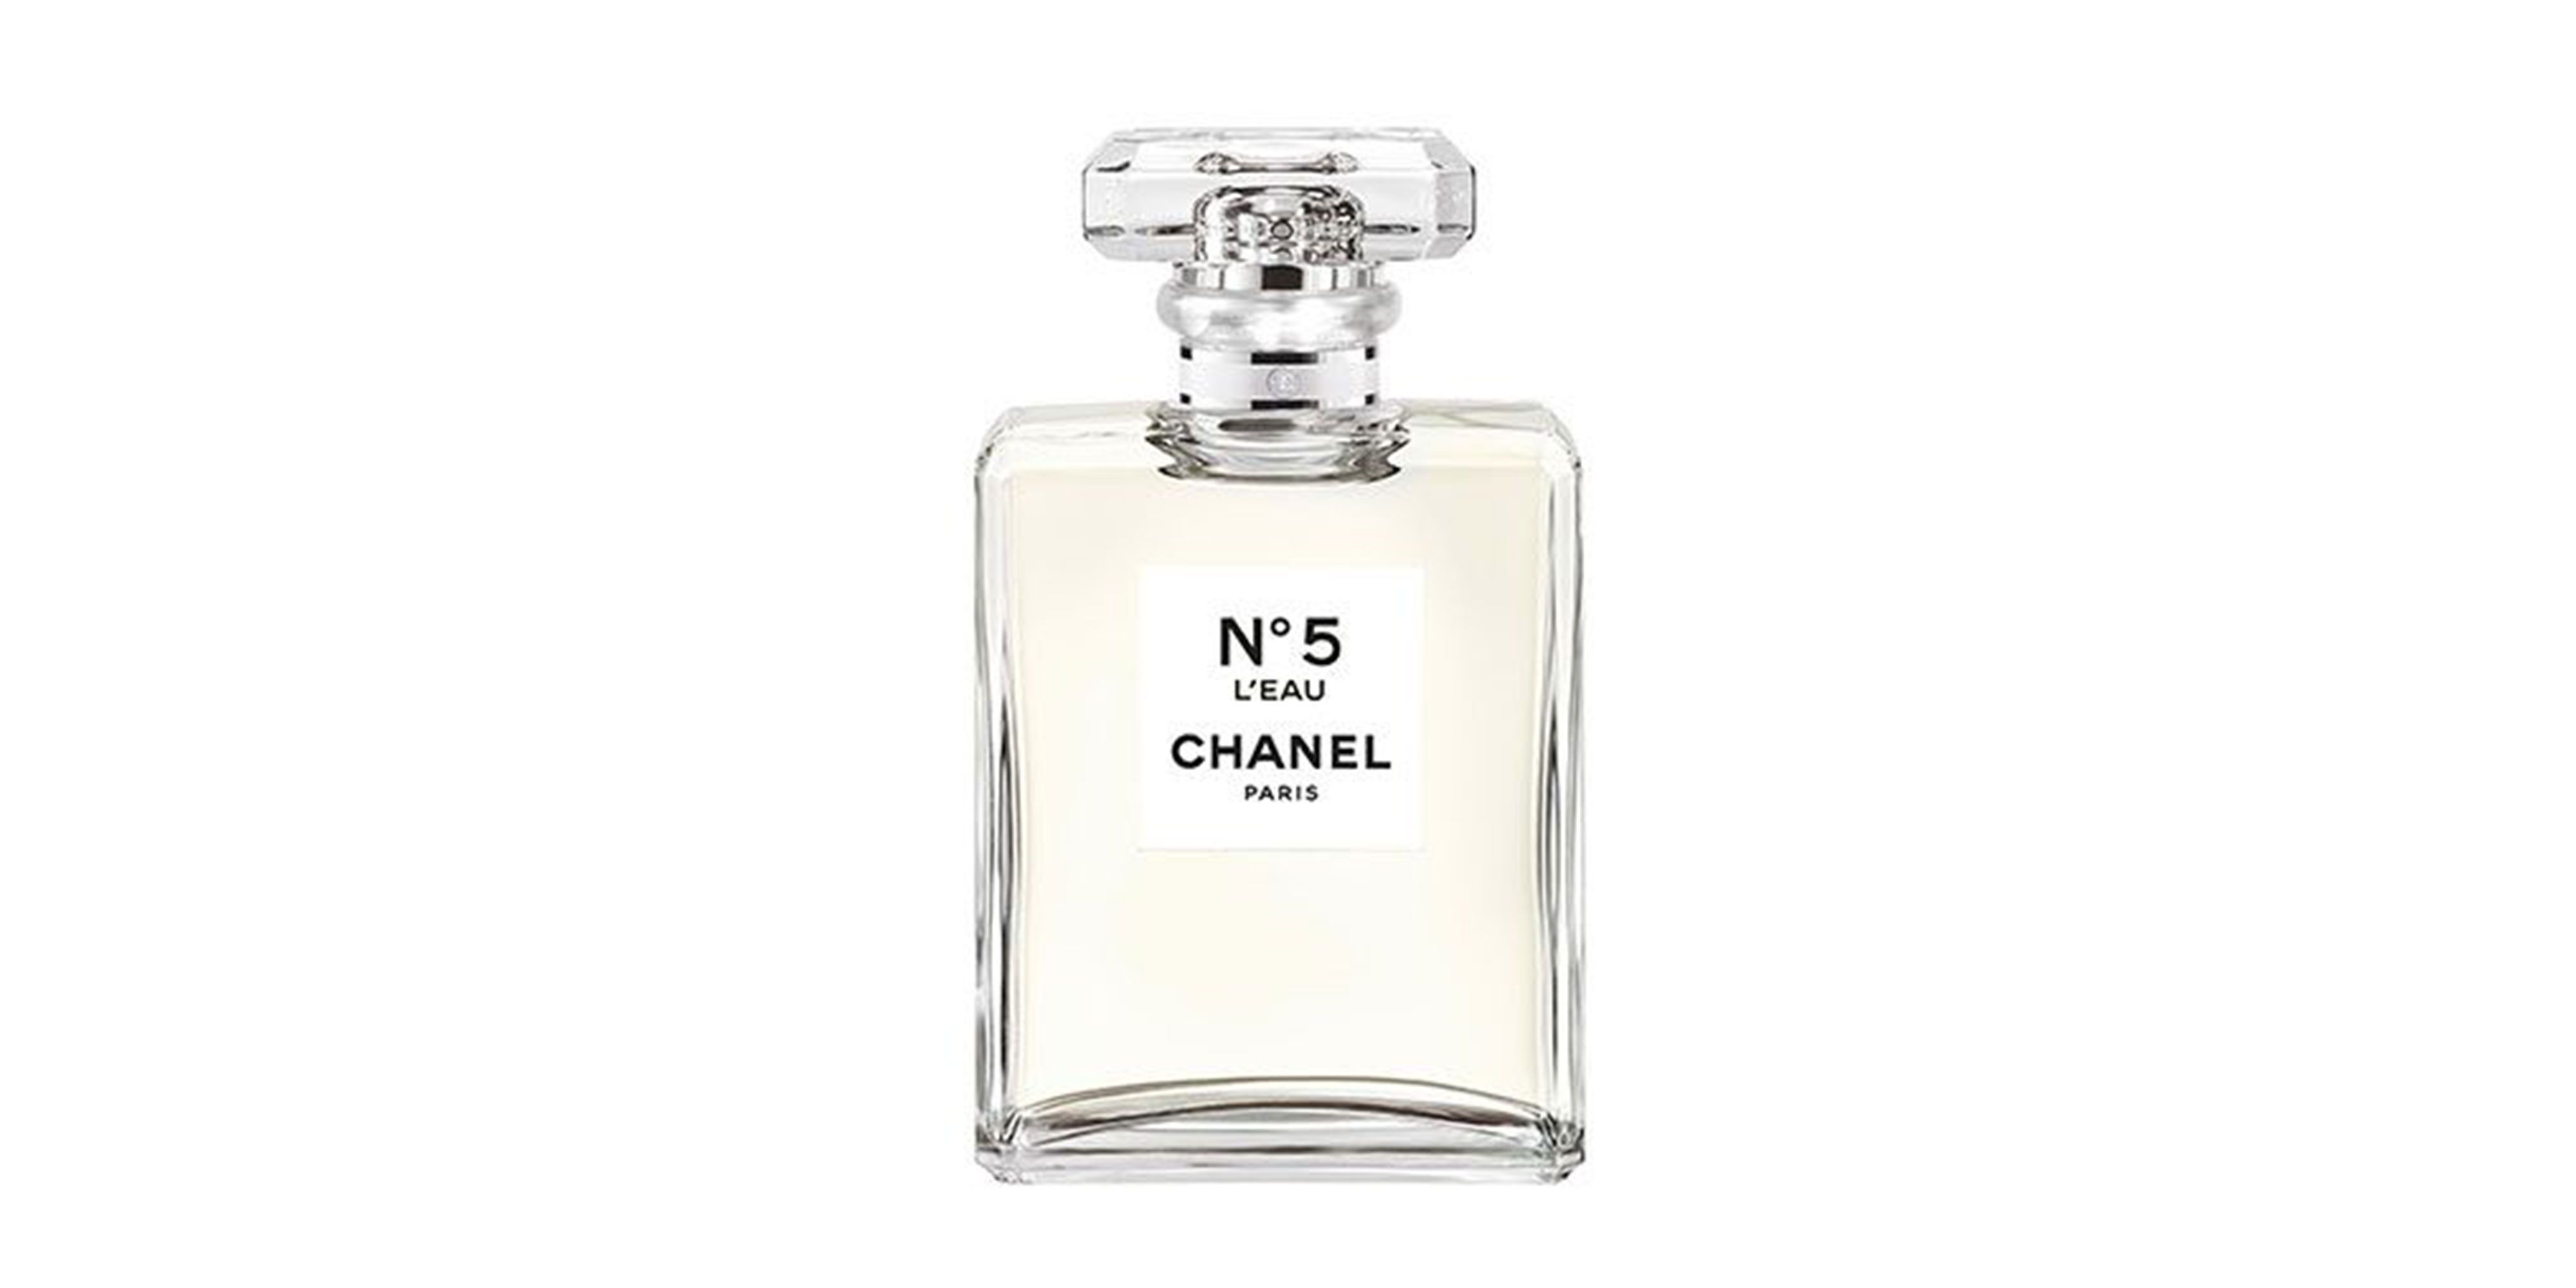 013b35c59d03 Chanel to Launch New No. 5 Scent - Chanel No. 5 Is Getting a Makeover